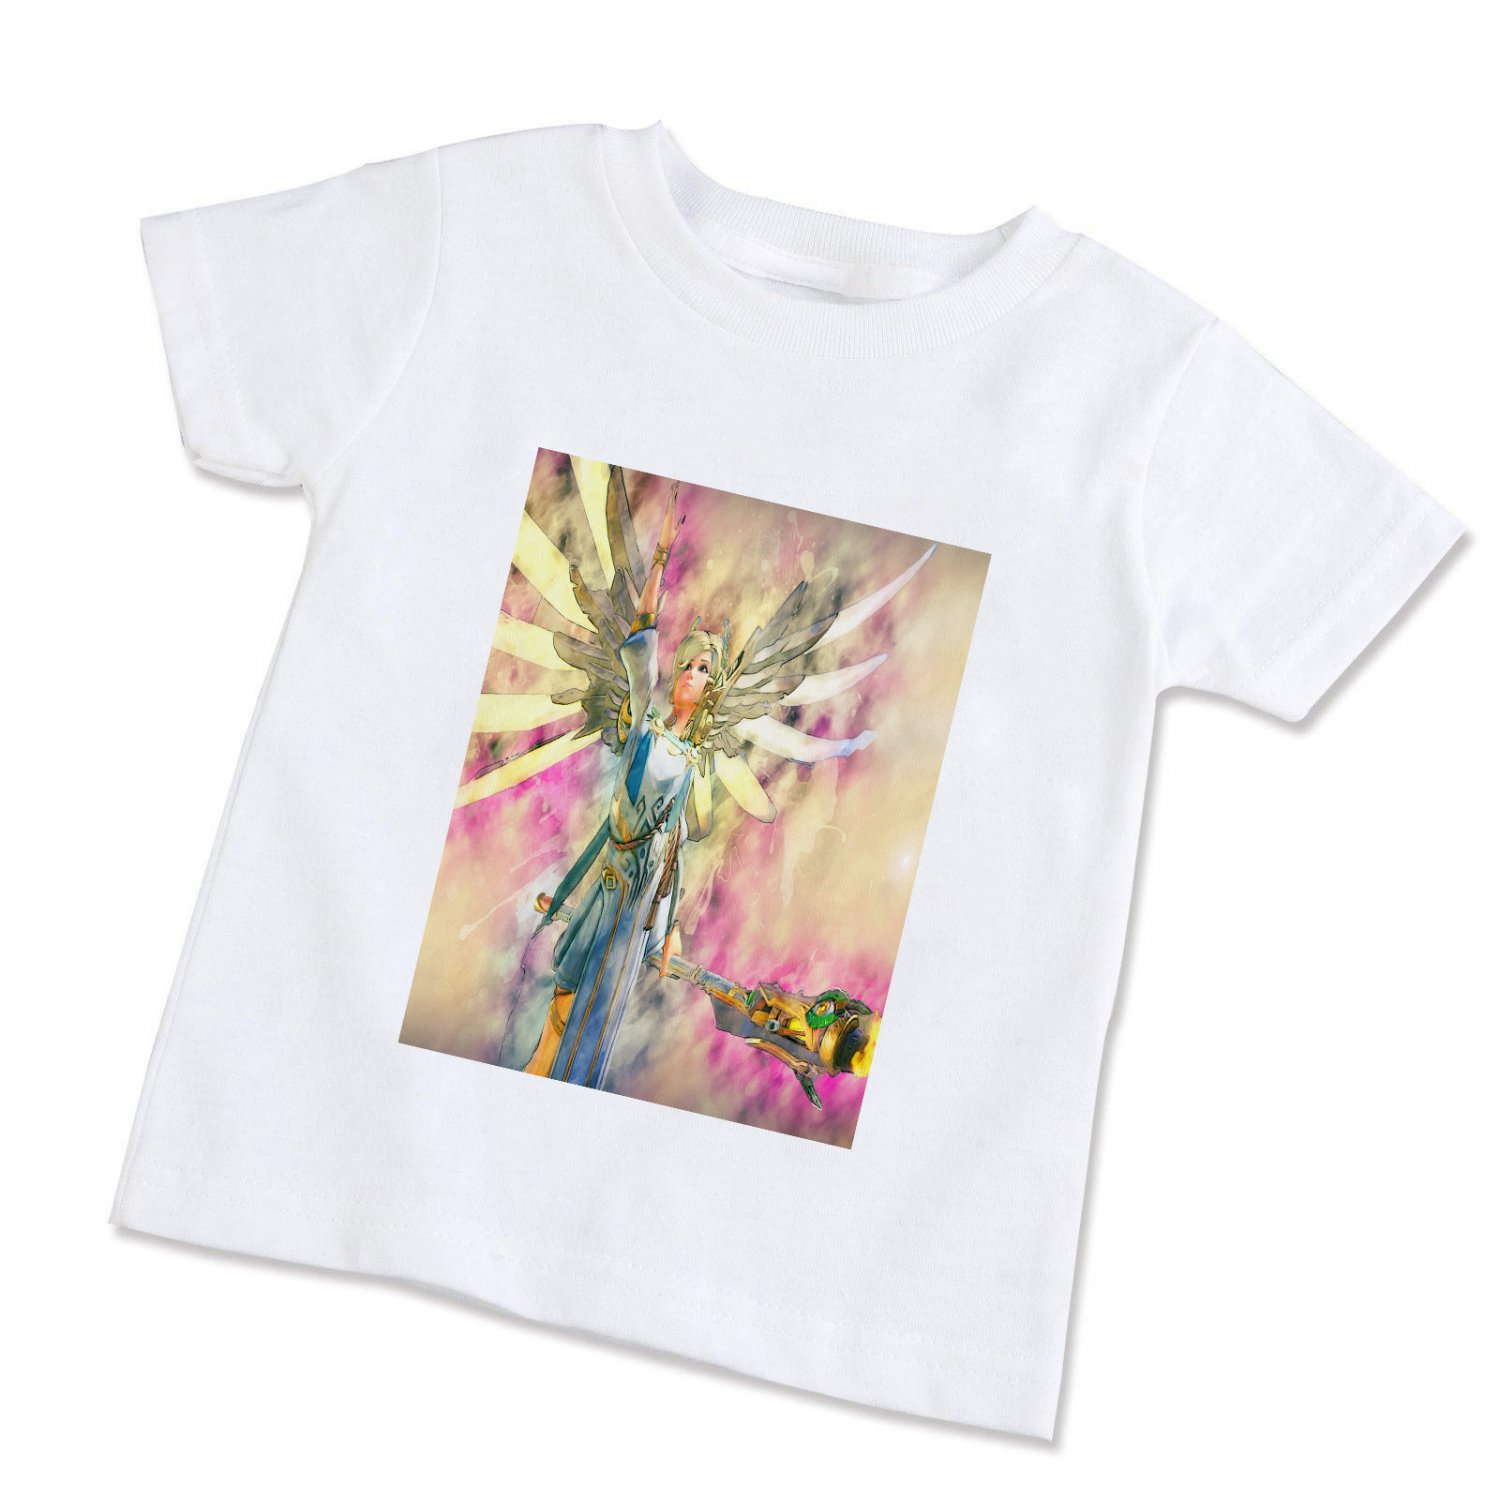 Overwatch Mercy Game  Unisex Children T-Shirt (Available in XS/S/M/L)